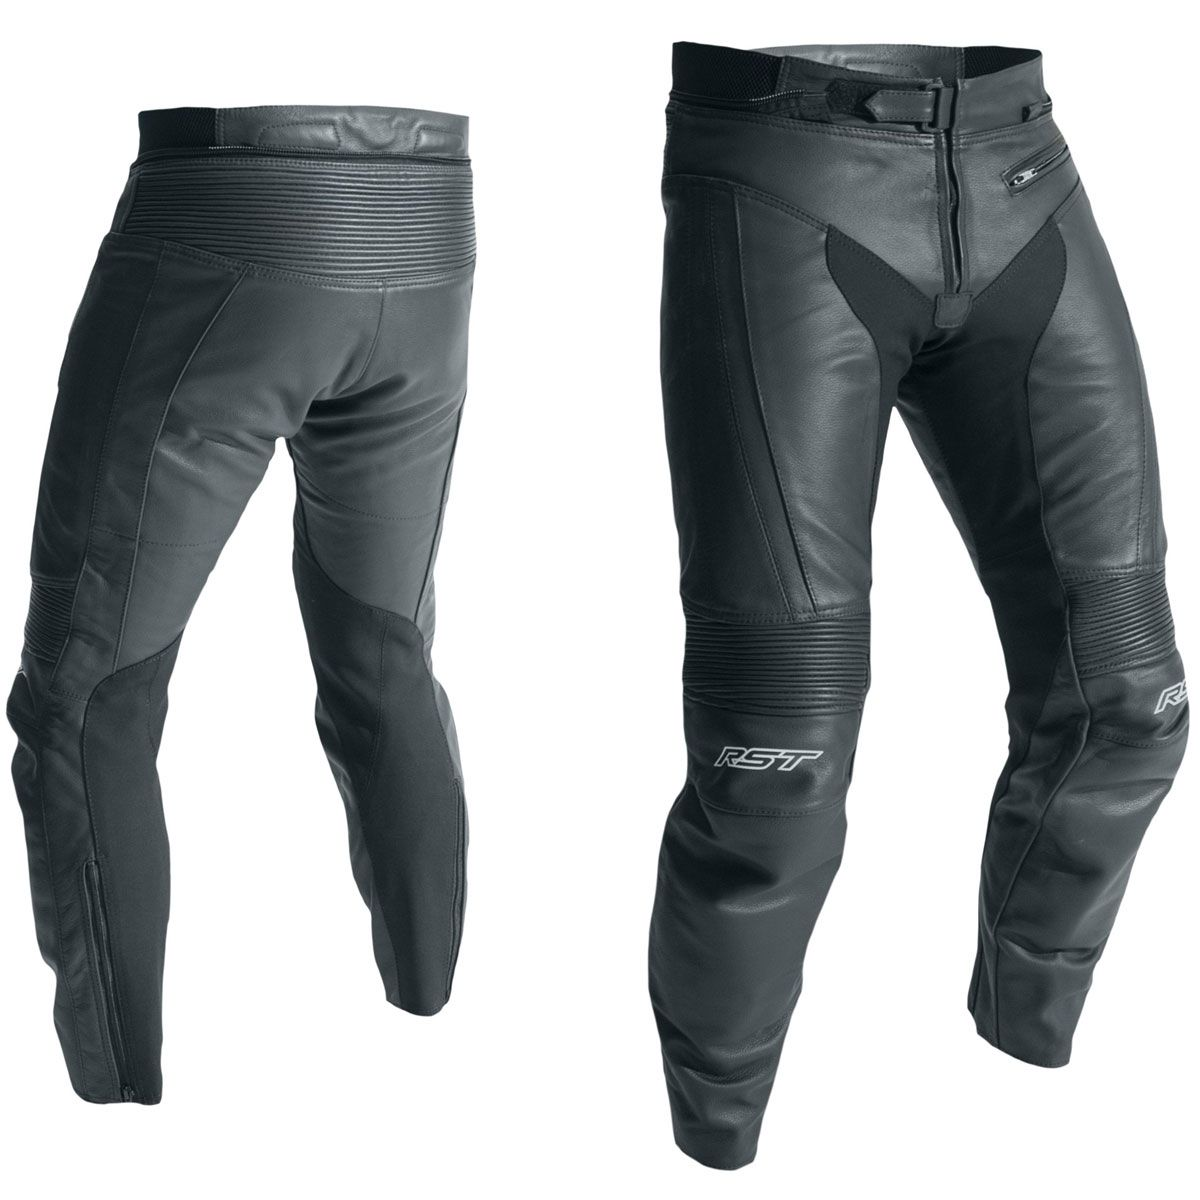 RST R-18 CE Leather Trousers Black